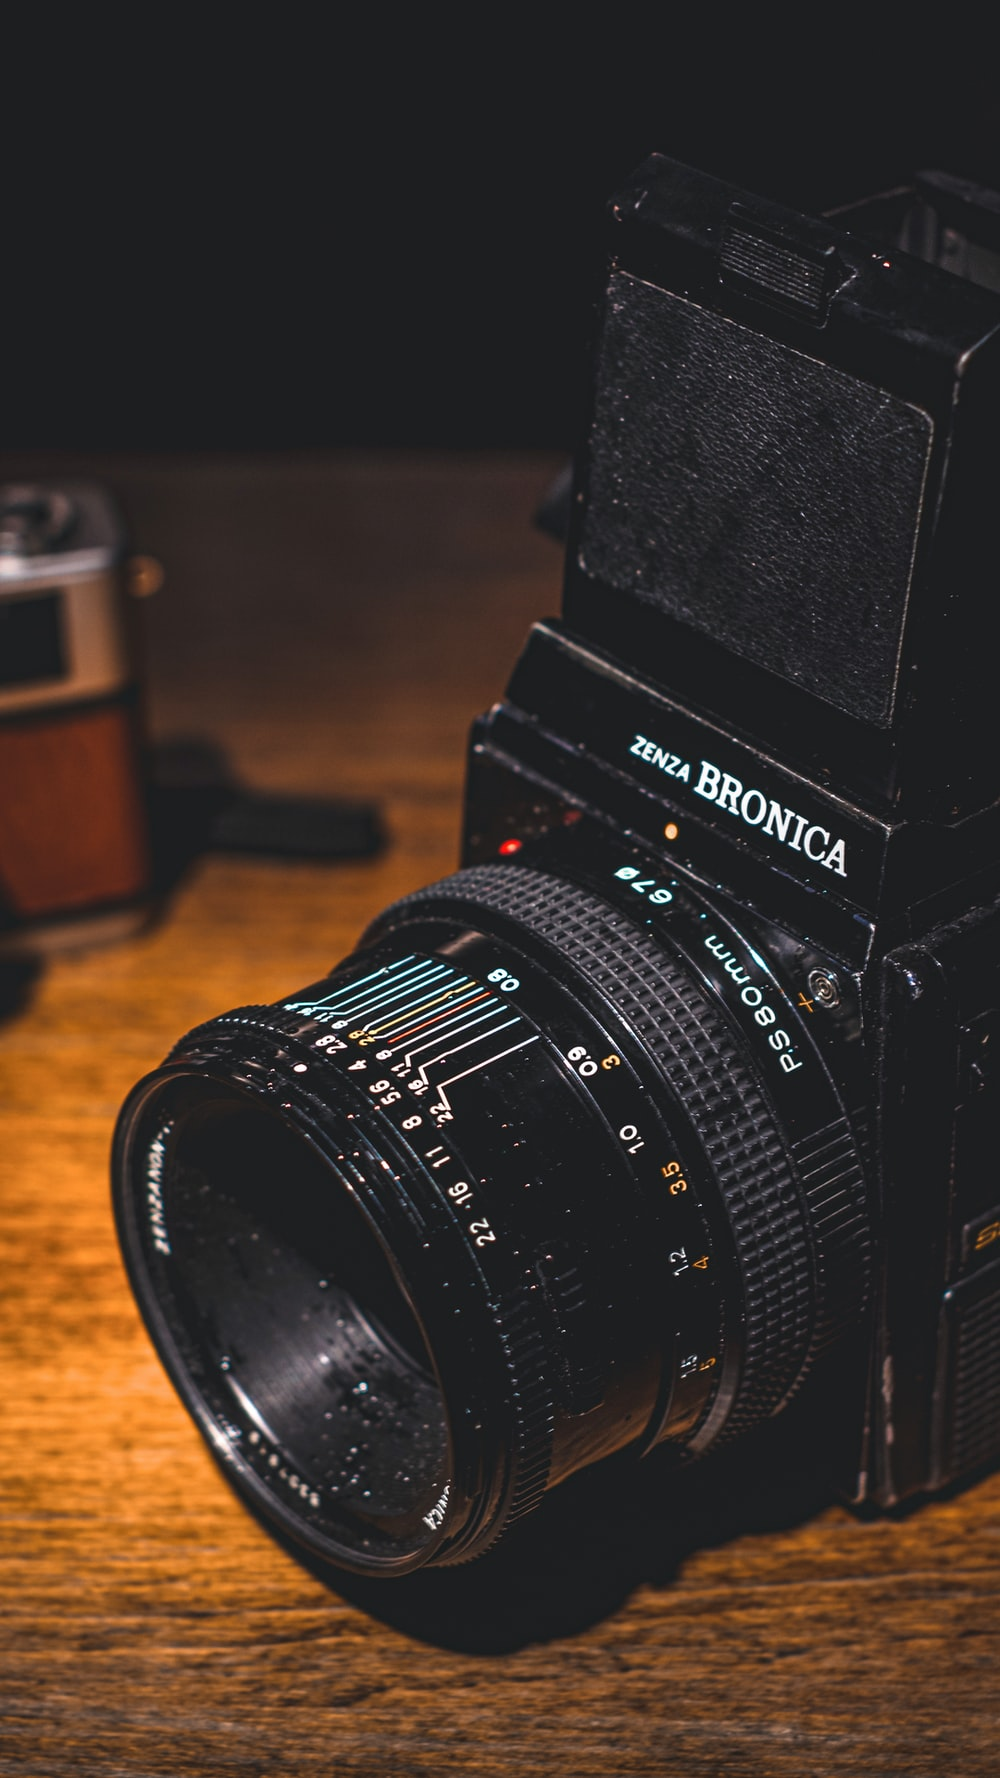 shallow focus photography of Bronica camera